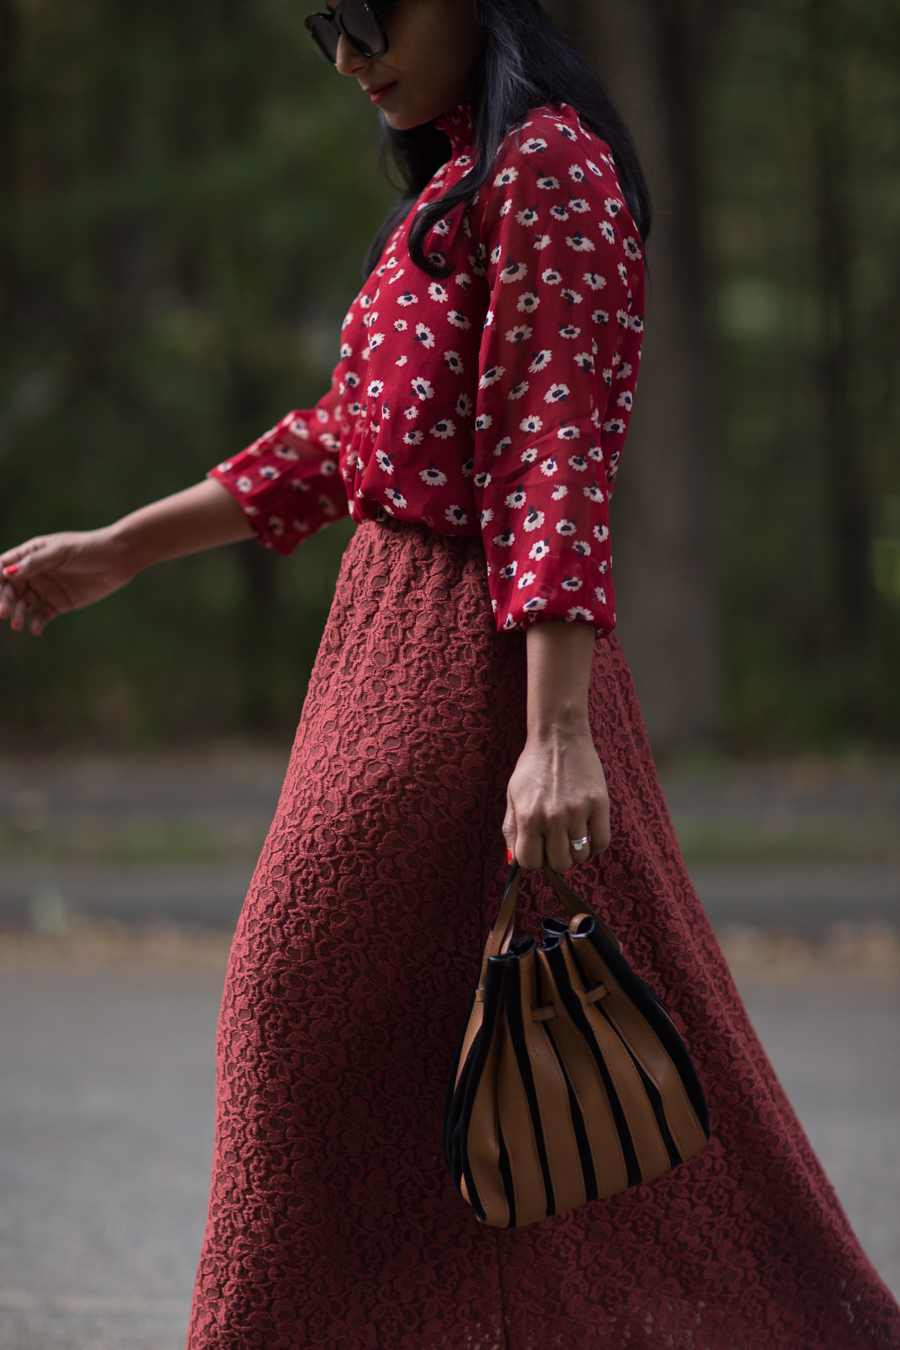 fall fashion, floral, fall style, office style, work style, fall outfit, petite stylist, petite blogger, fashion over 40, monochromatic, street style, fall layers, burgundy outfit, zara